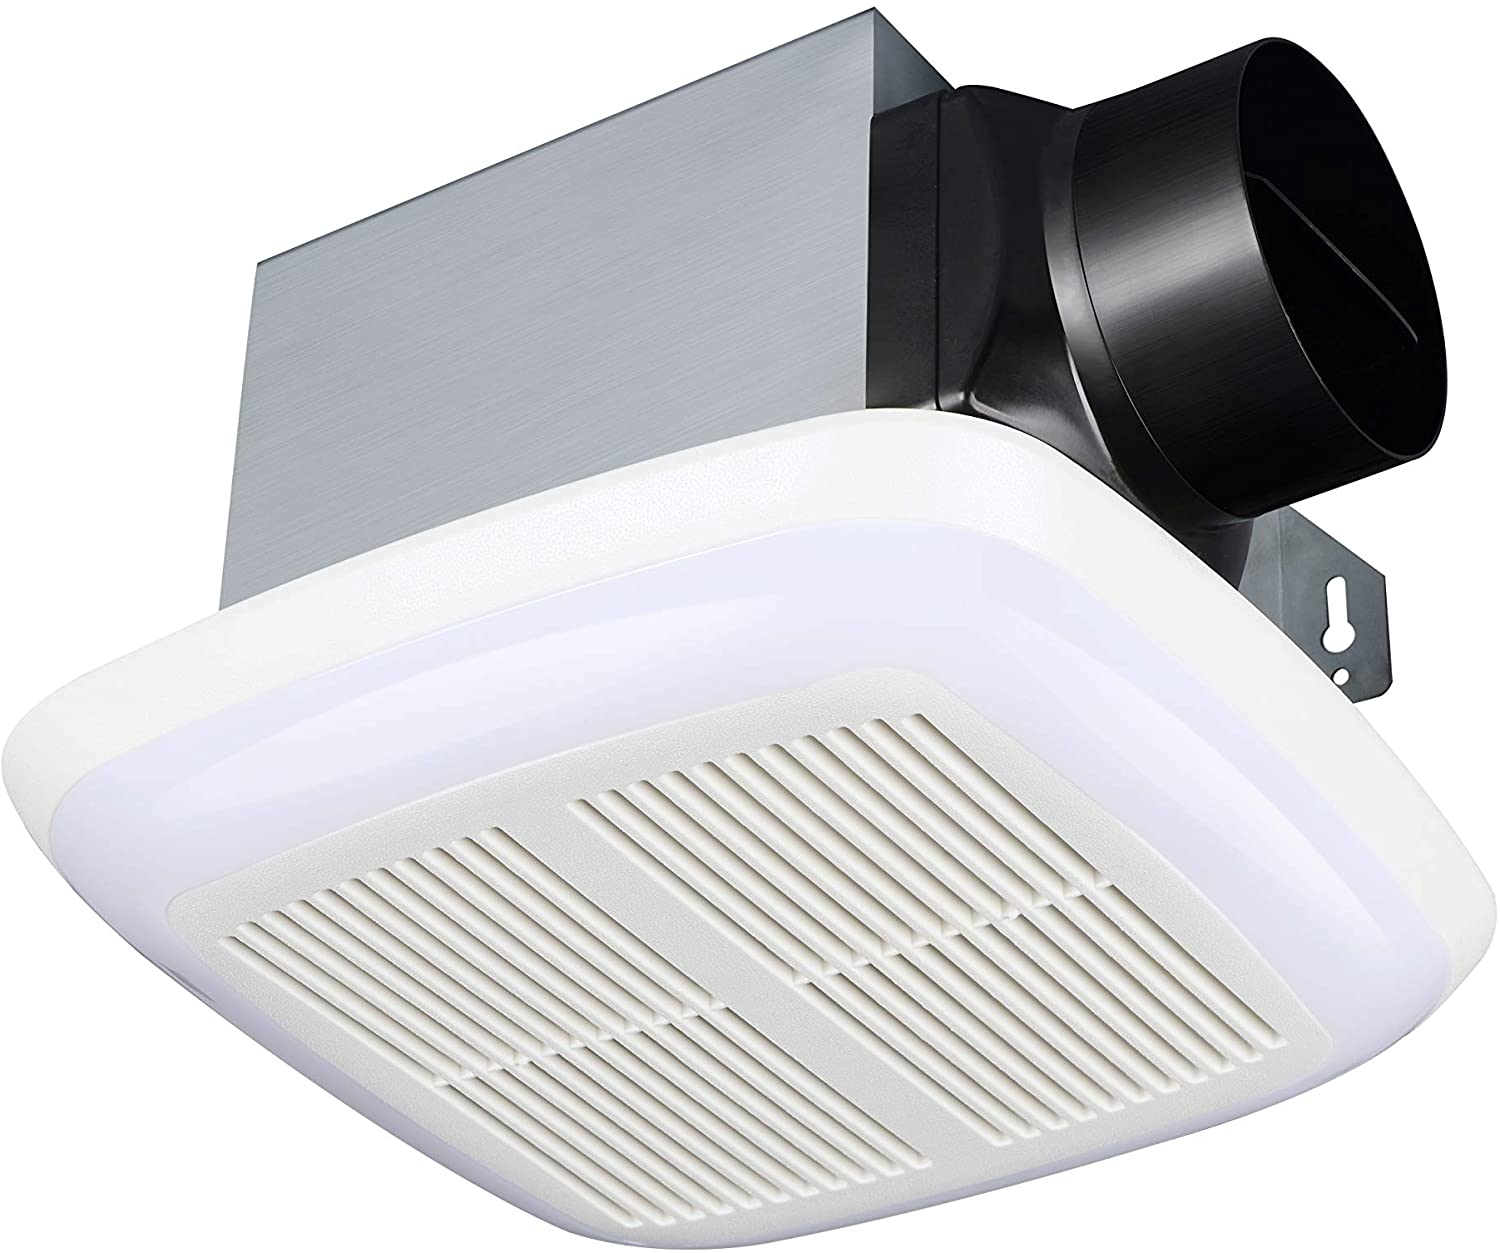 Tech Drive Very-Quiet 80 CFM 1.5 Sone No Attic access Needed Installation Bathroom Ventilation and Exhaust Fan With LED light 4000K 600LM ,Ceiling Mounted Fan,Easy to Install 80CFM